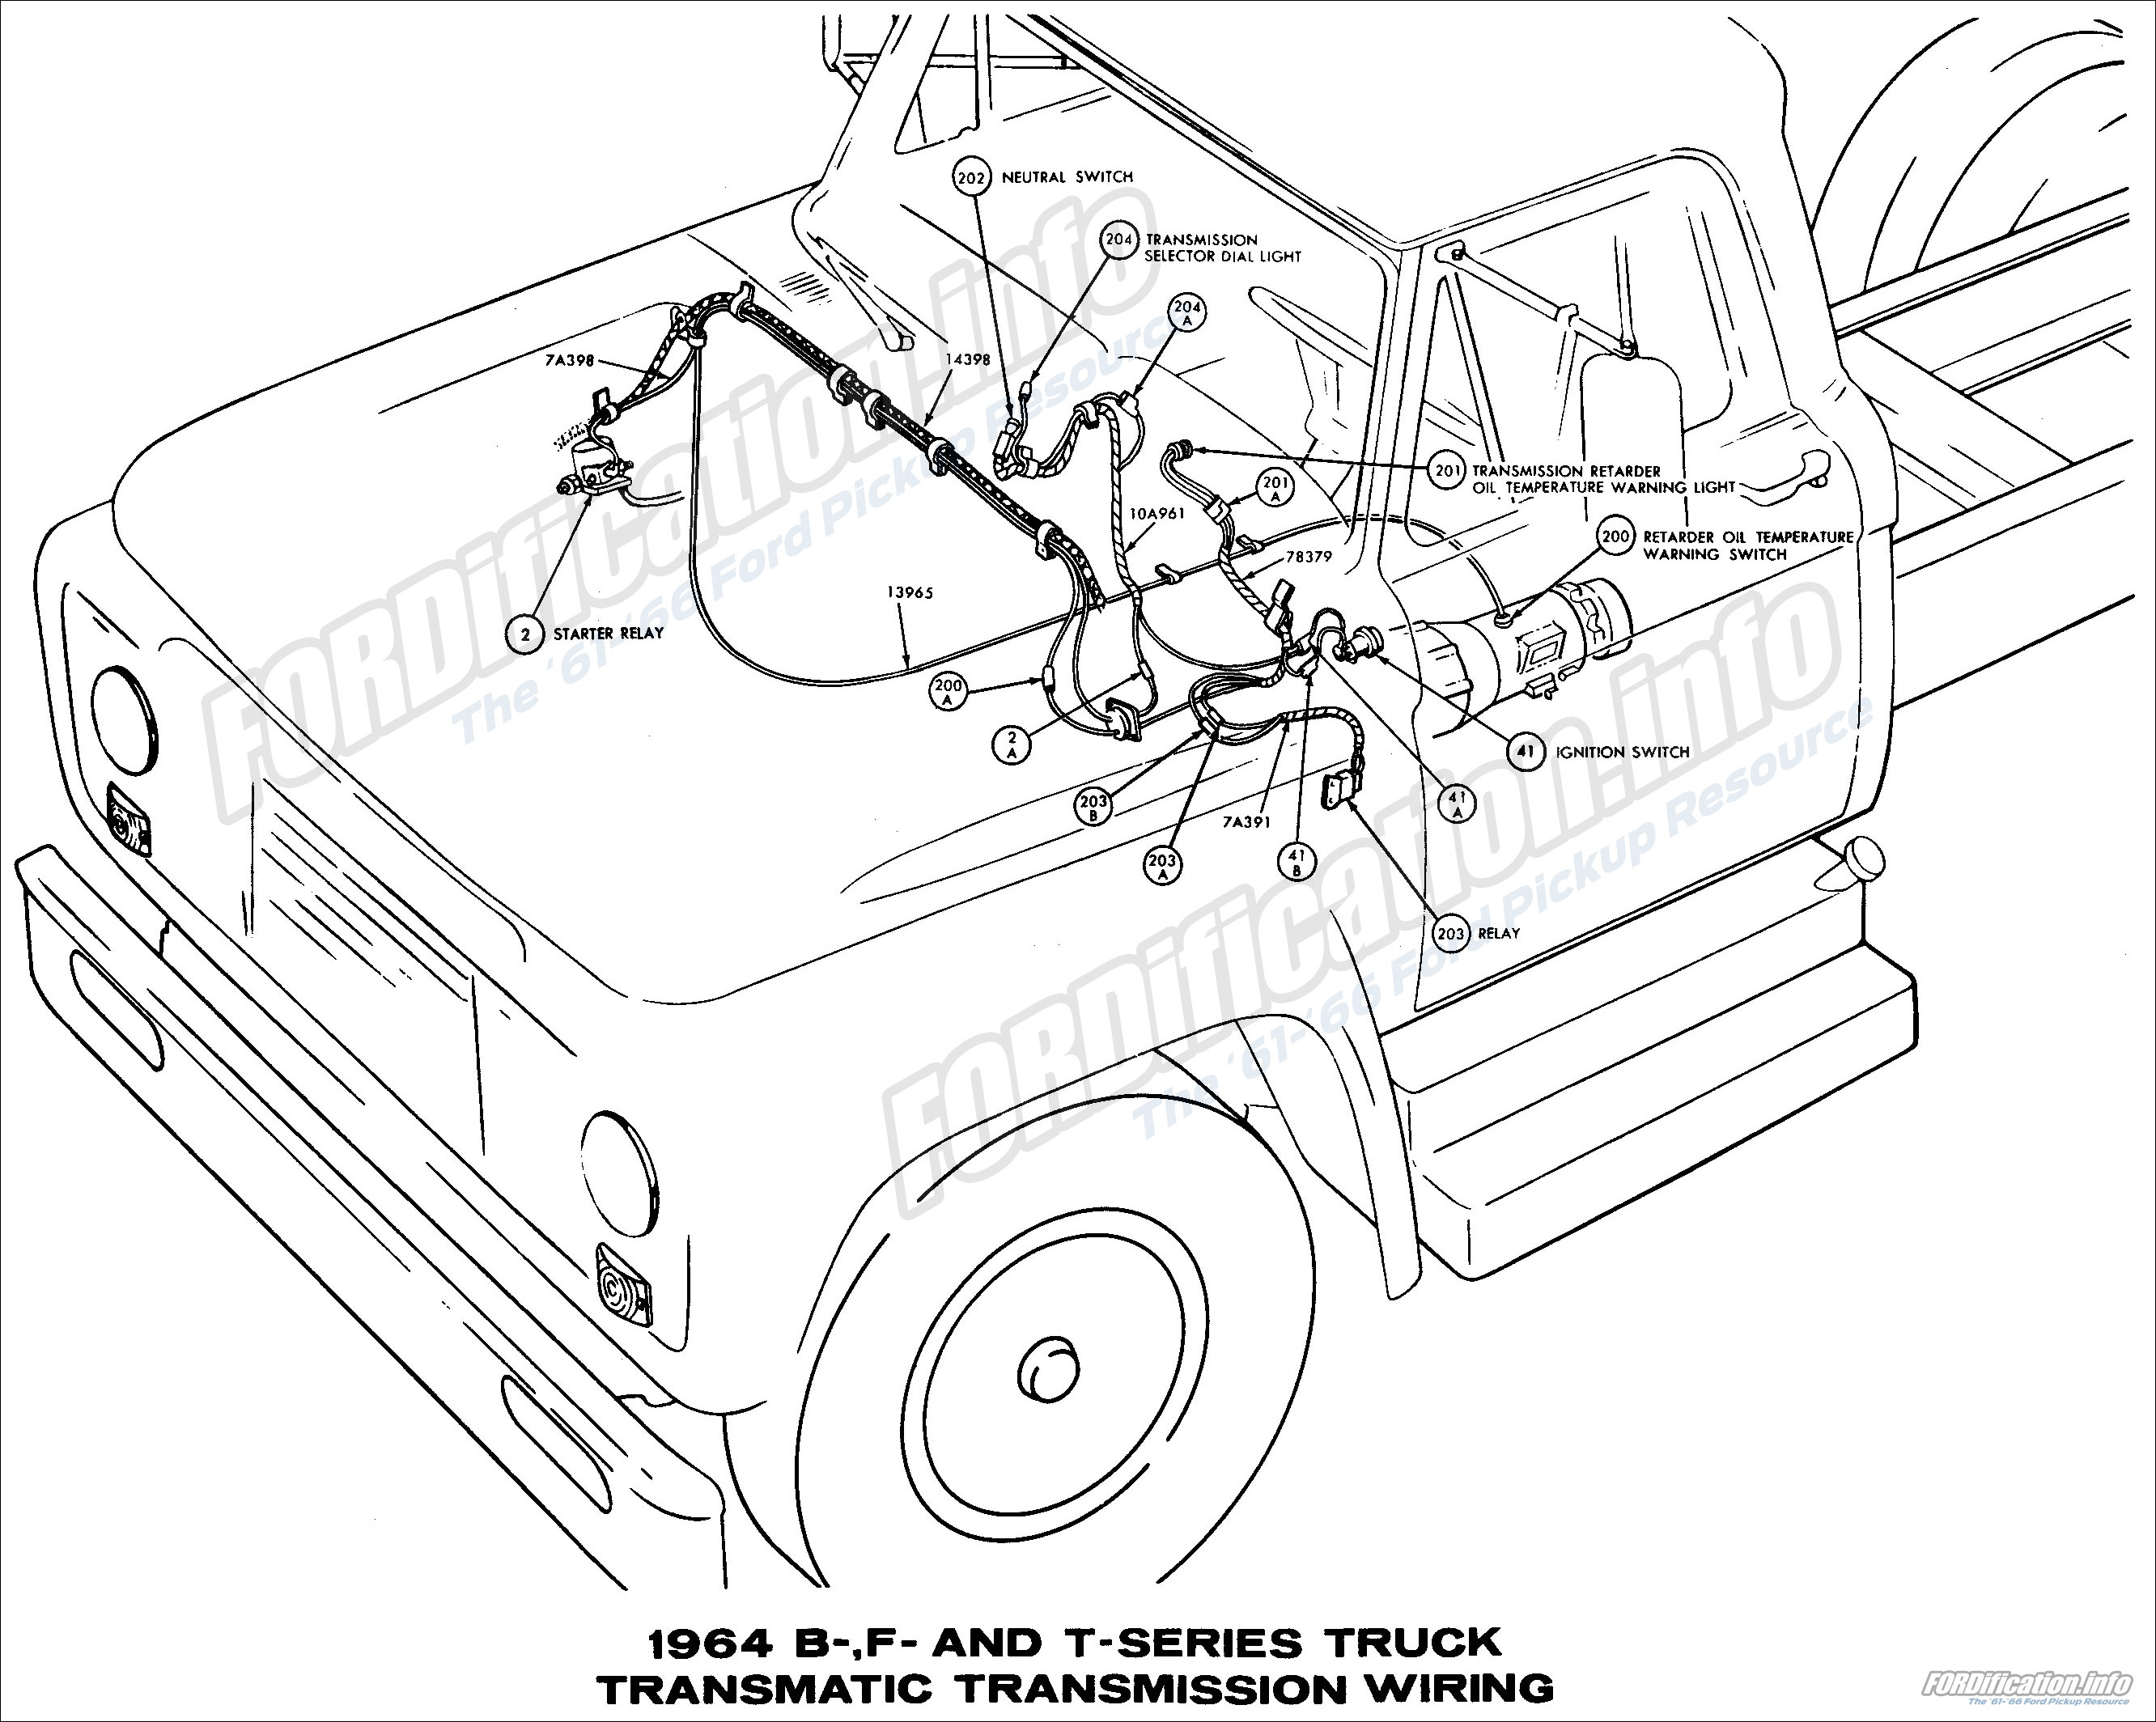 1964 Ford Truck Wiring Diagrams The 61 66 Lighting Circuit Diagram For Two Lights F100 A Pickup Resource